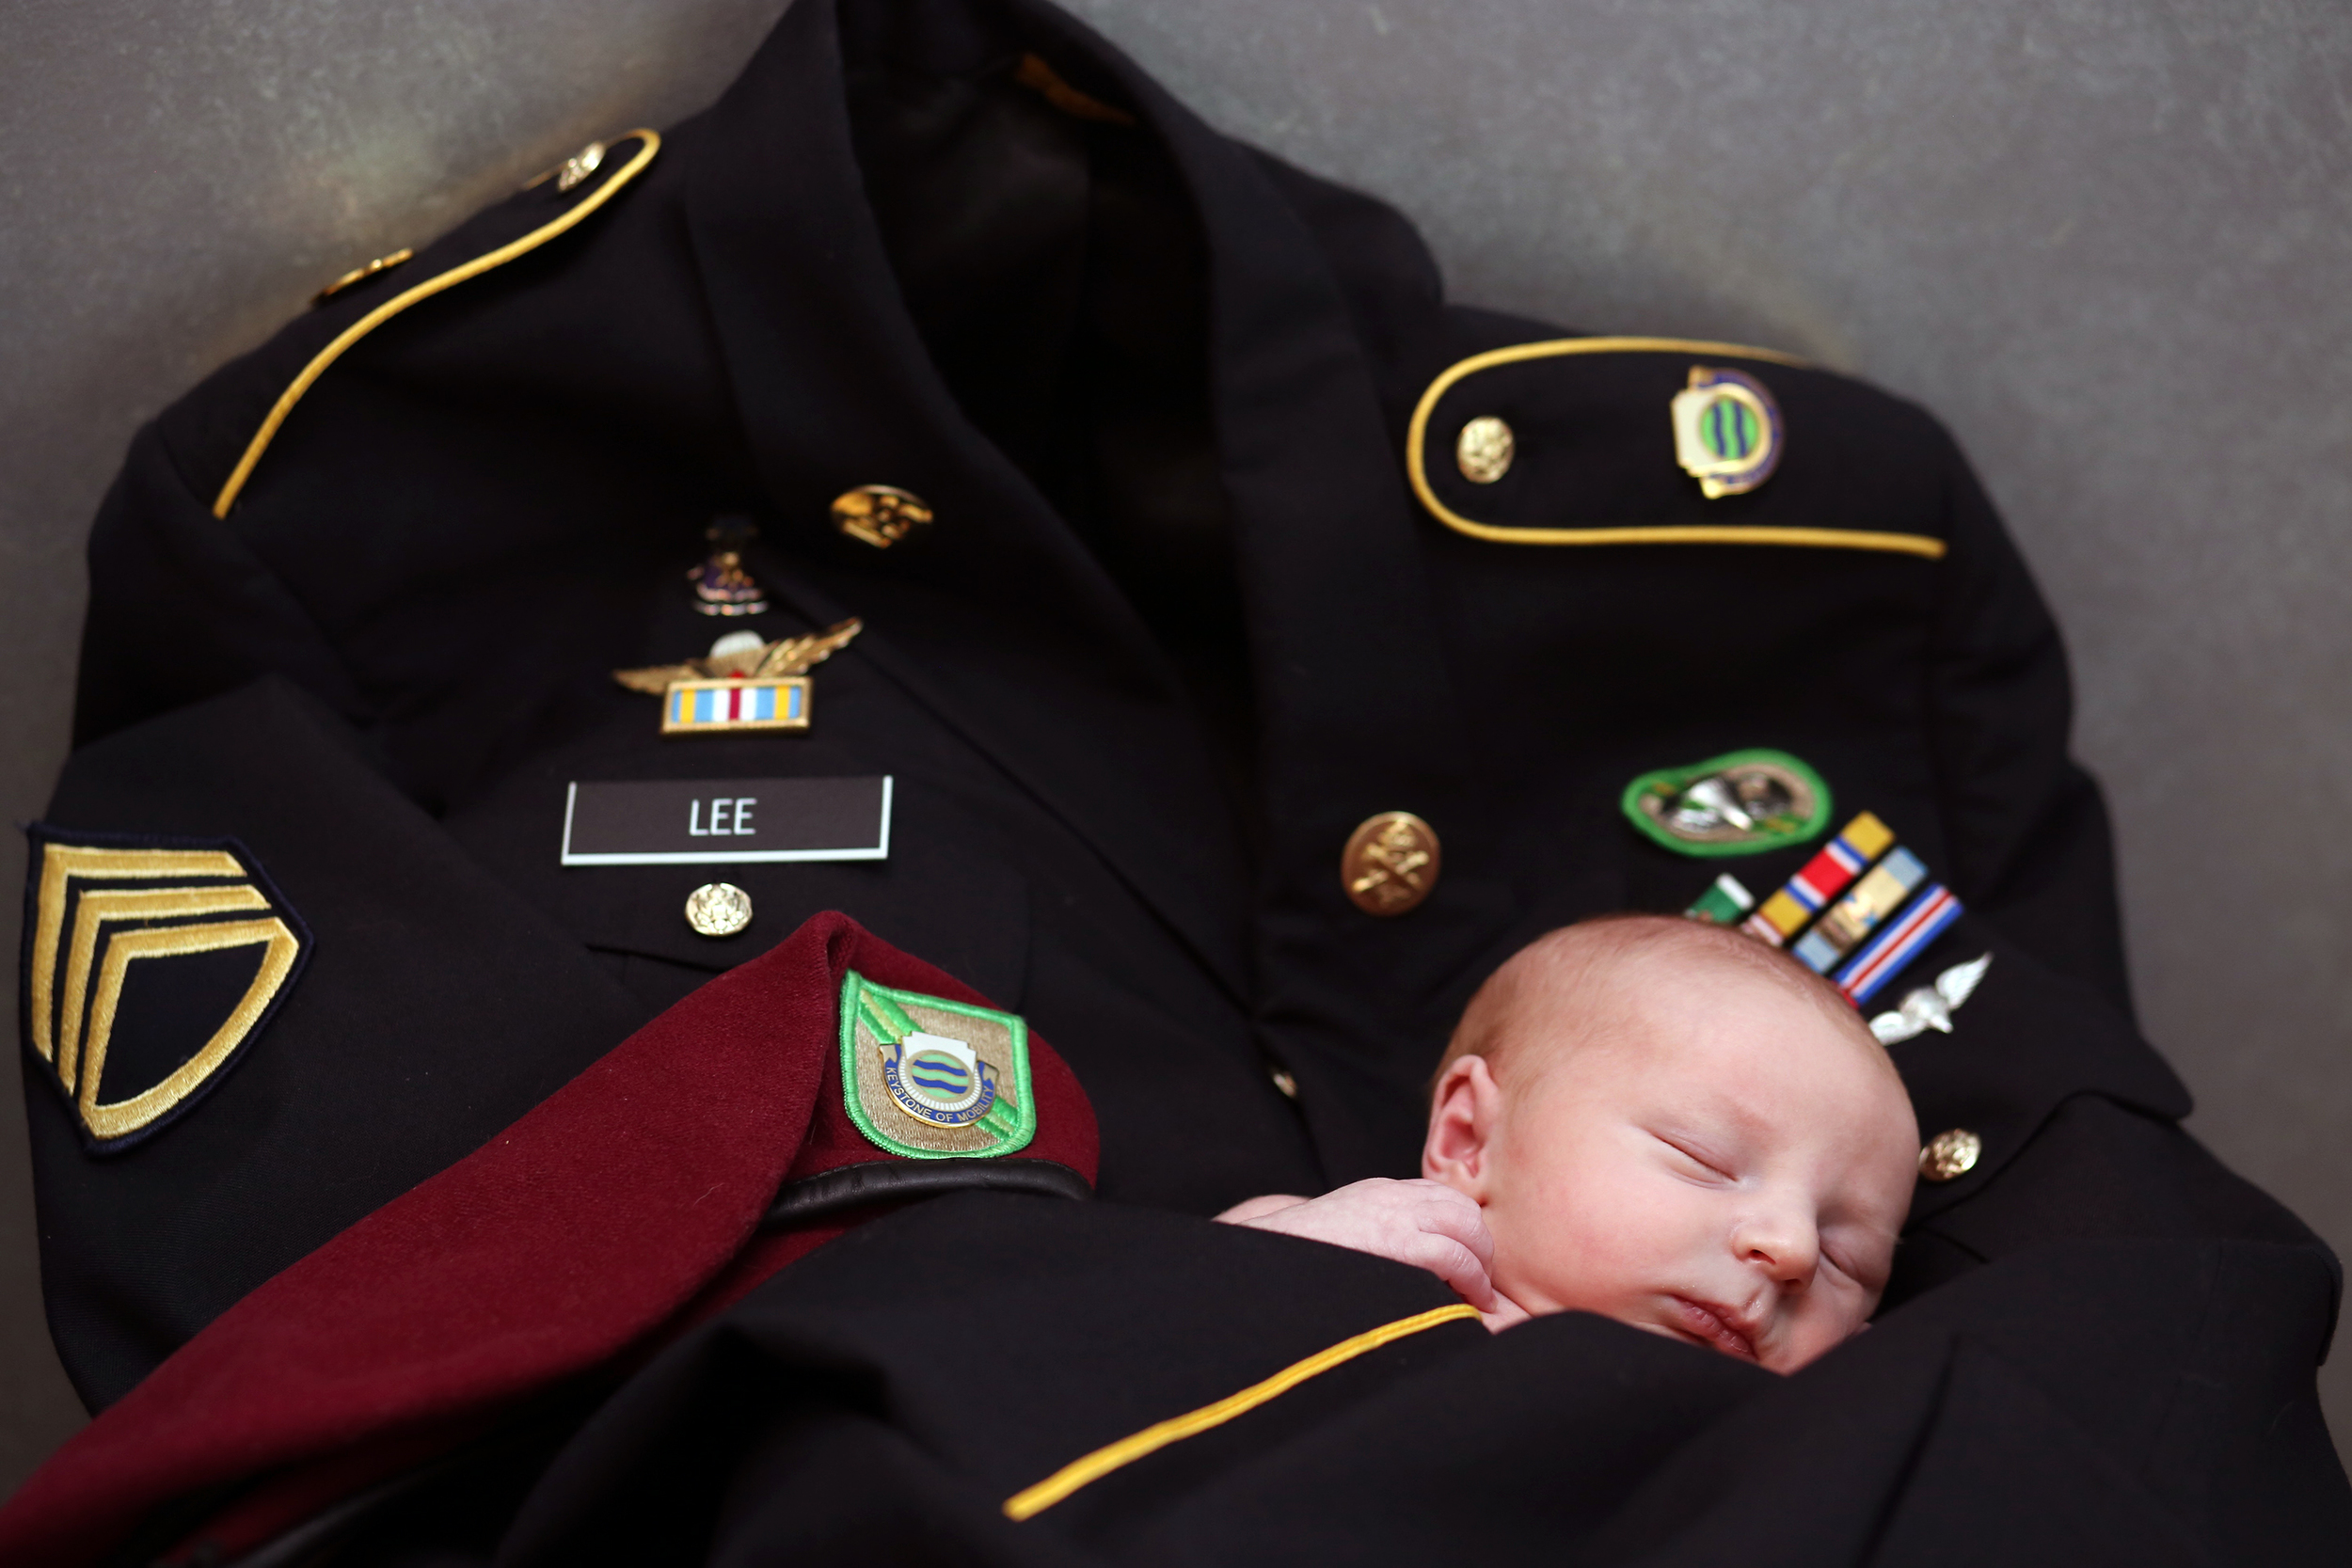 Caleb's Father's military uniform made the perfect baby blanket for snuggling.